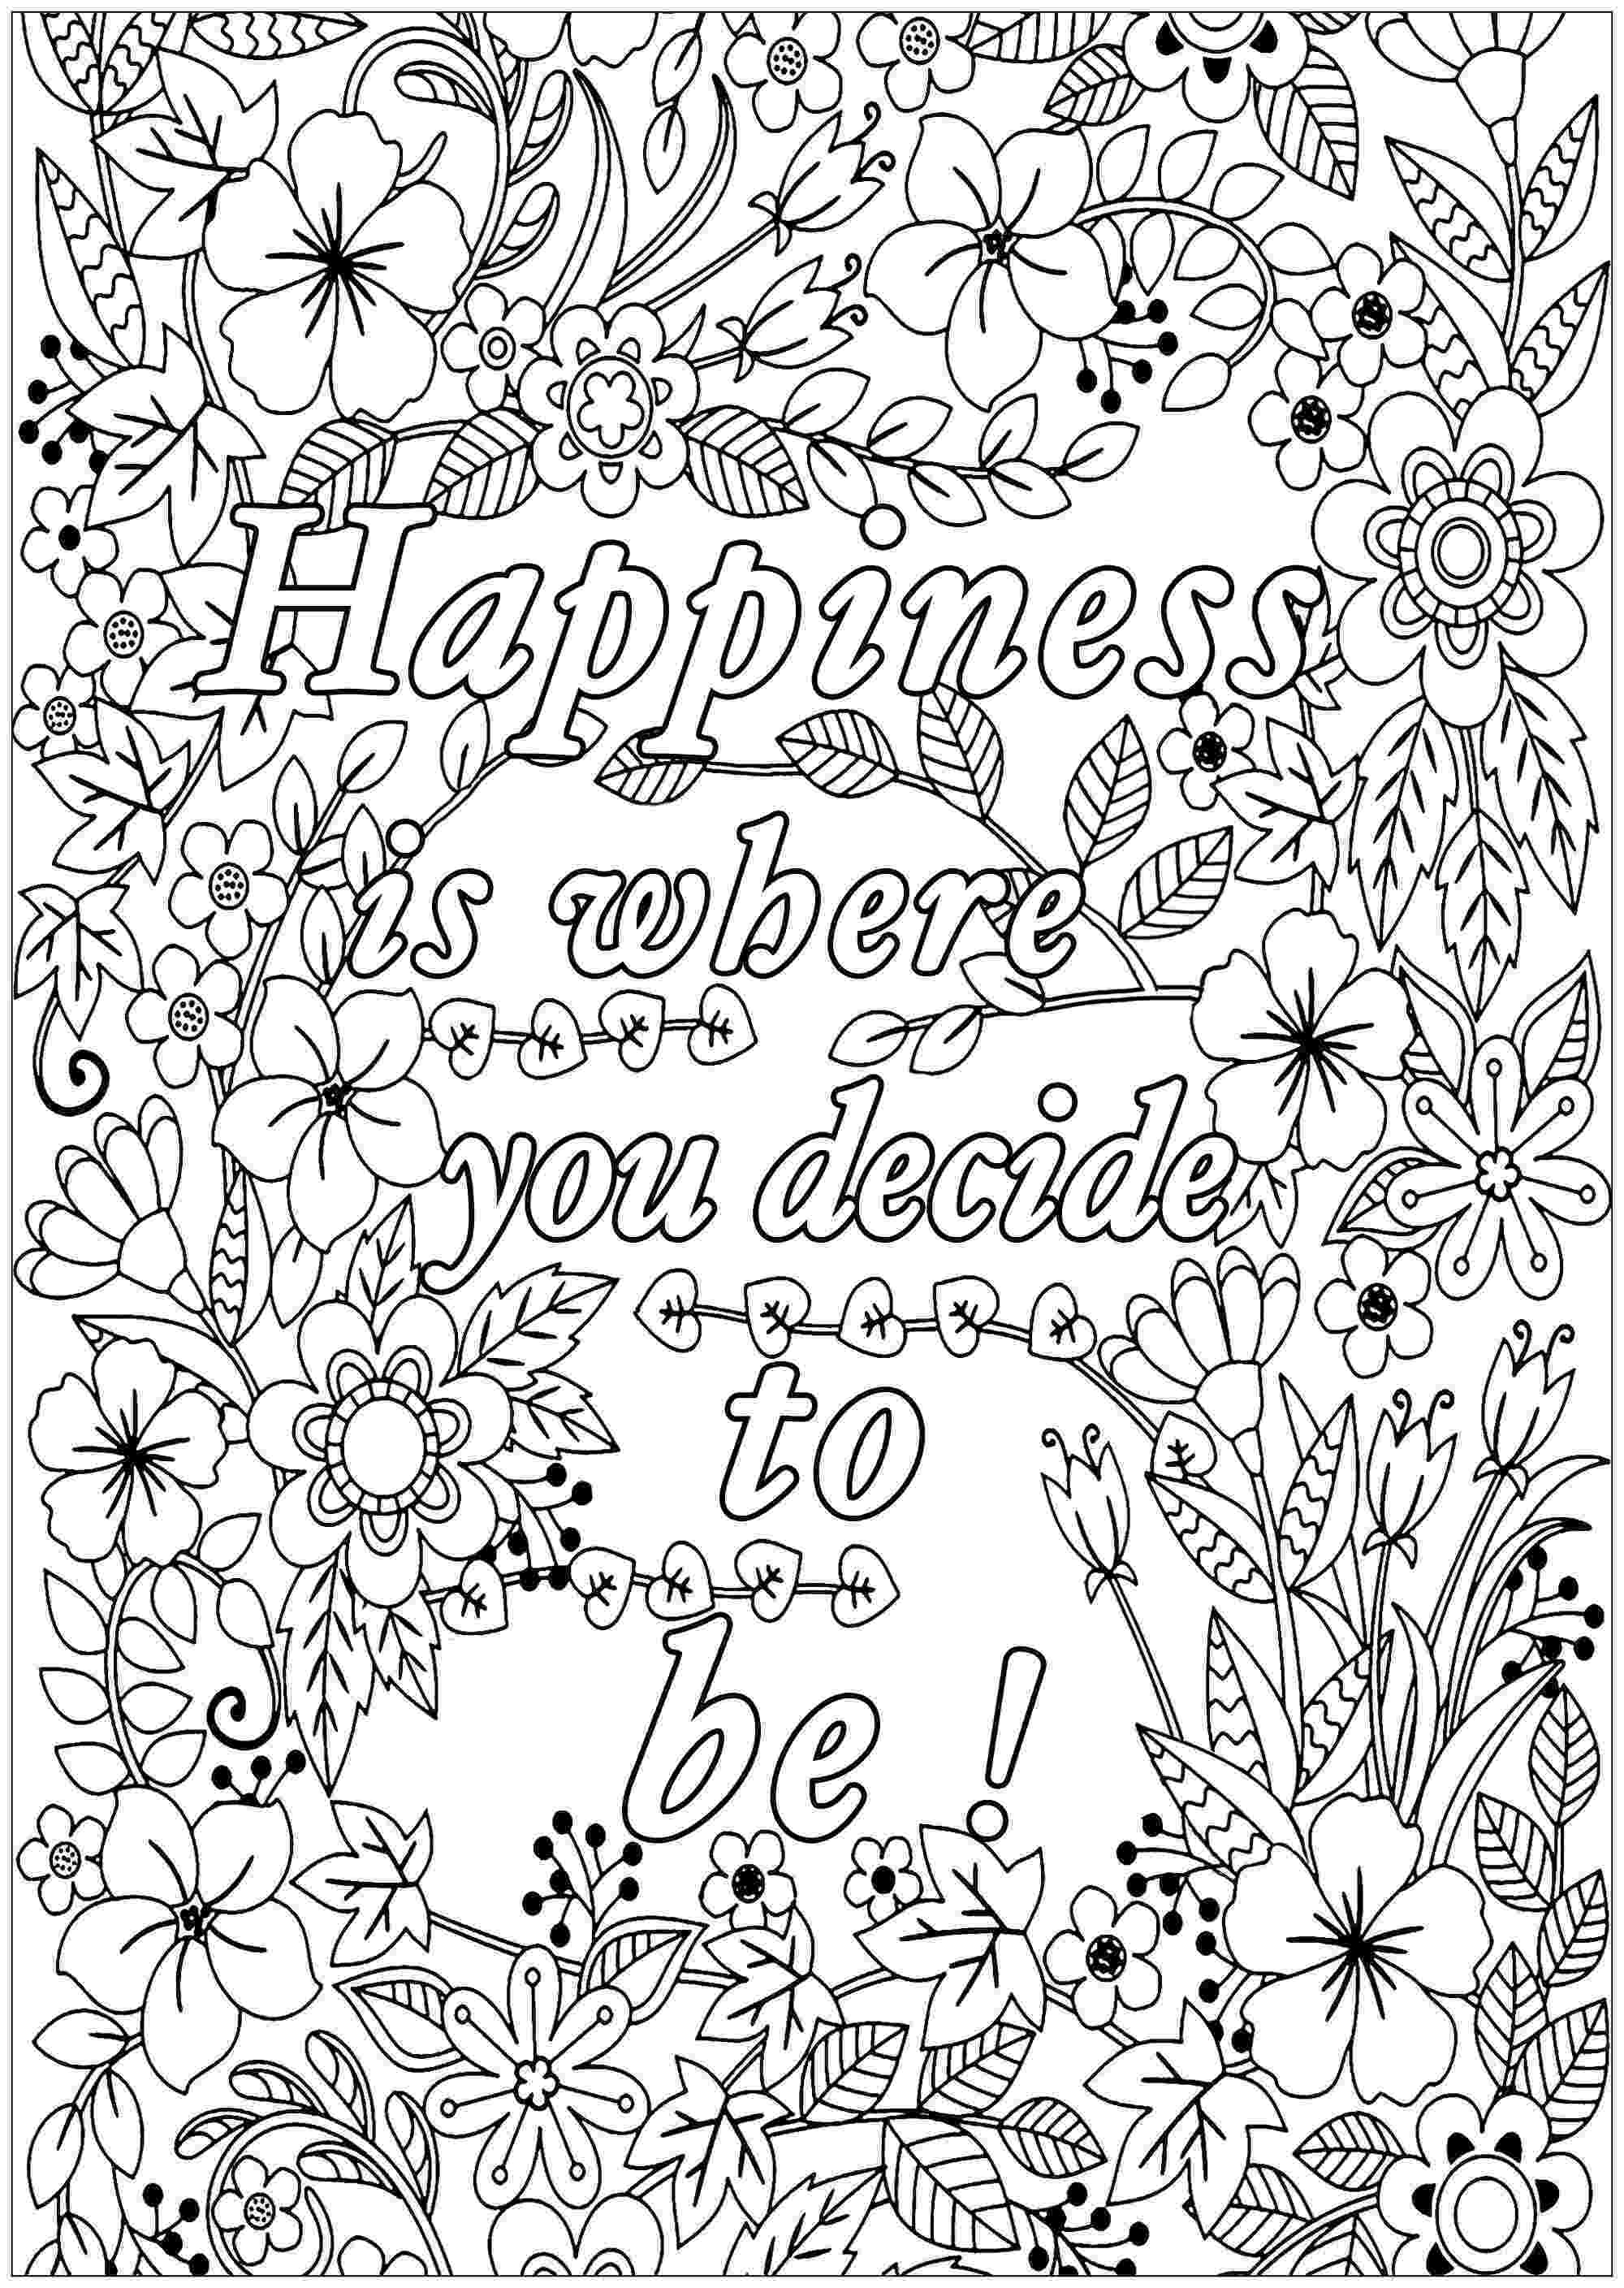 colouring pages for adults with quotes happiness is where you decide to be quotes adult quotes for pages colouring adults with